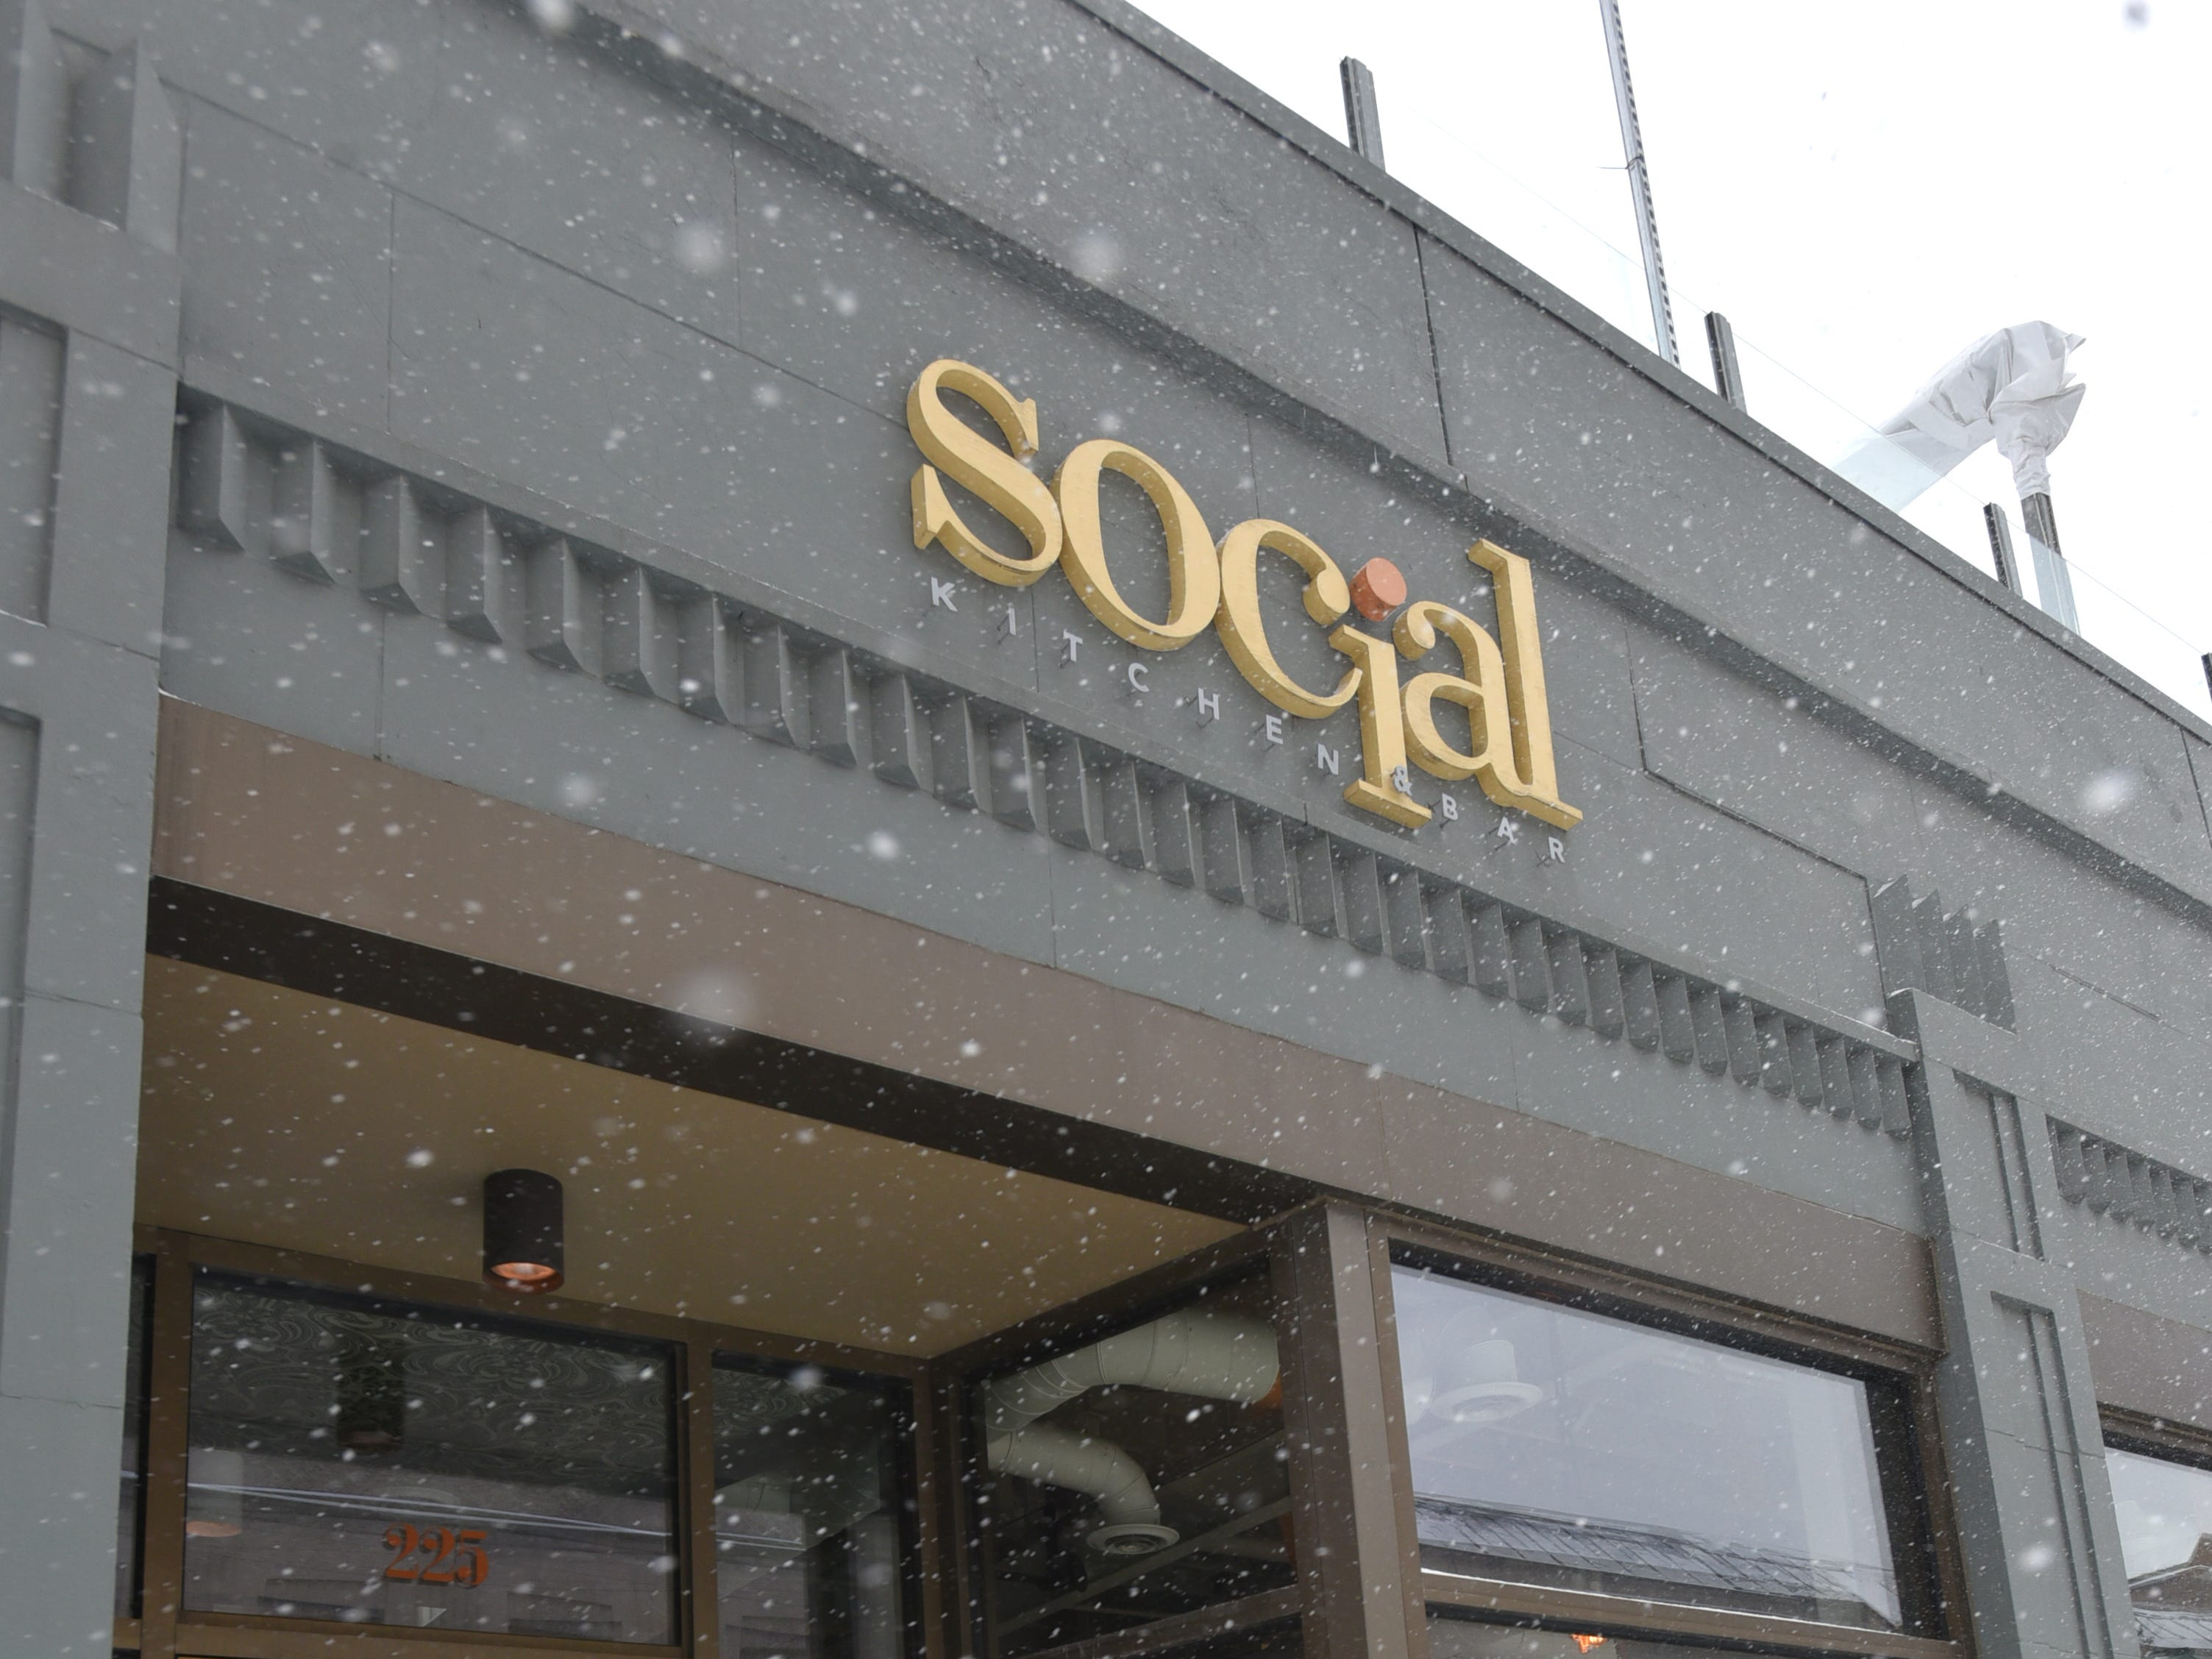 Social on East Maple in Birmingham.